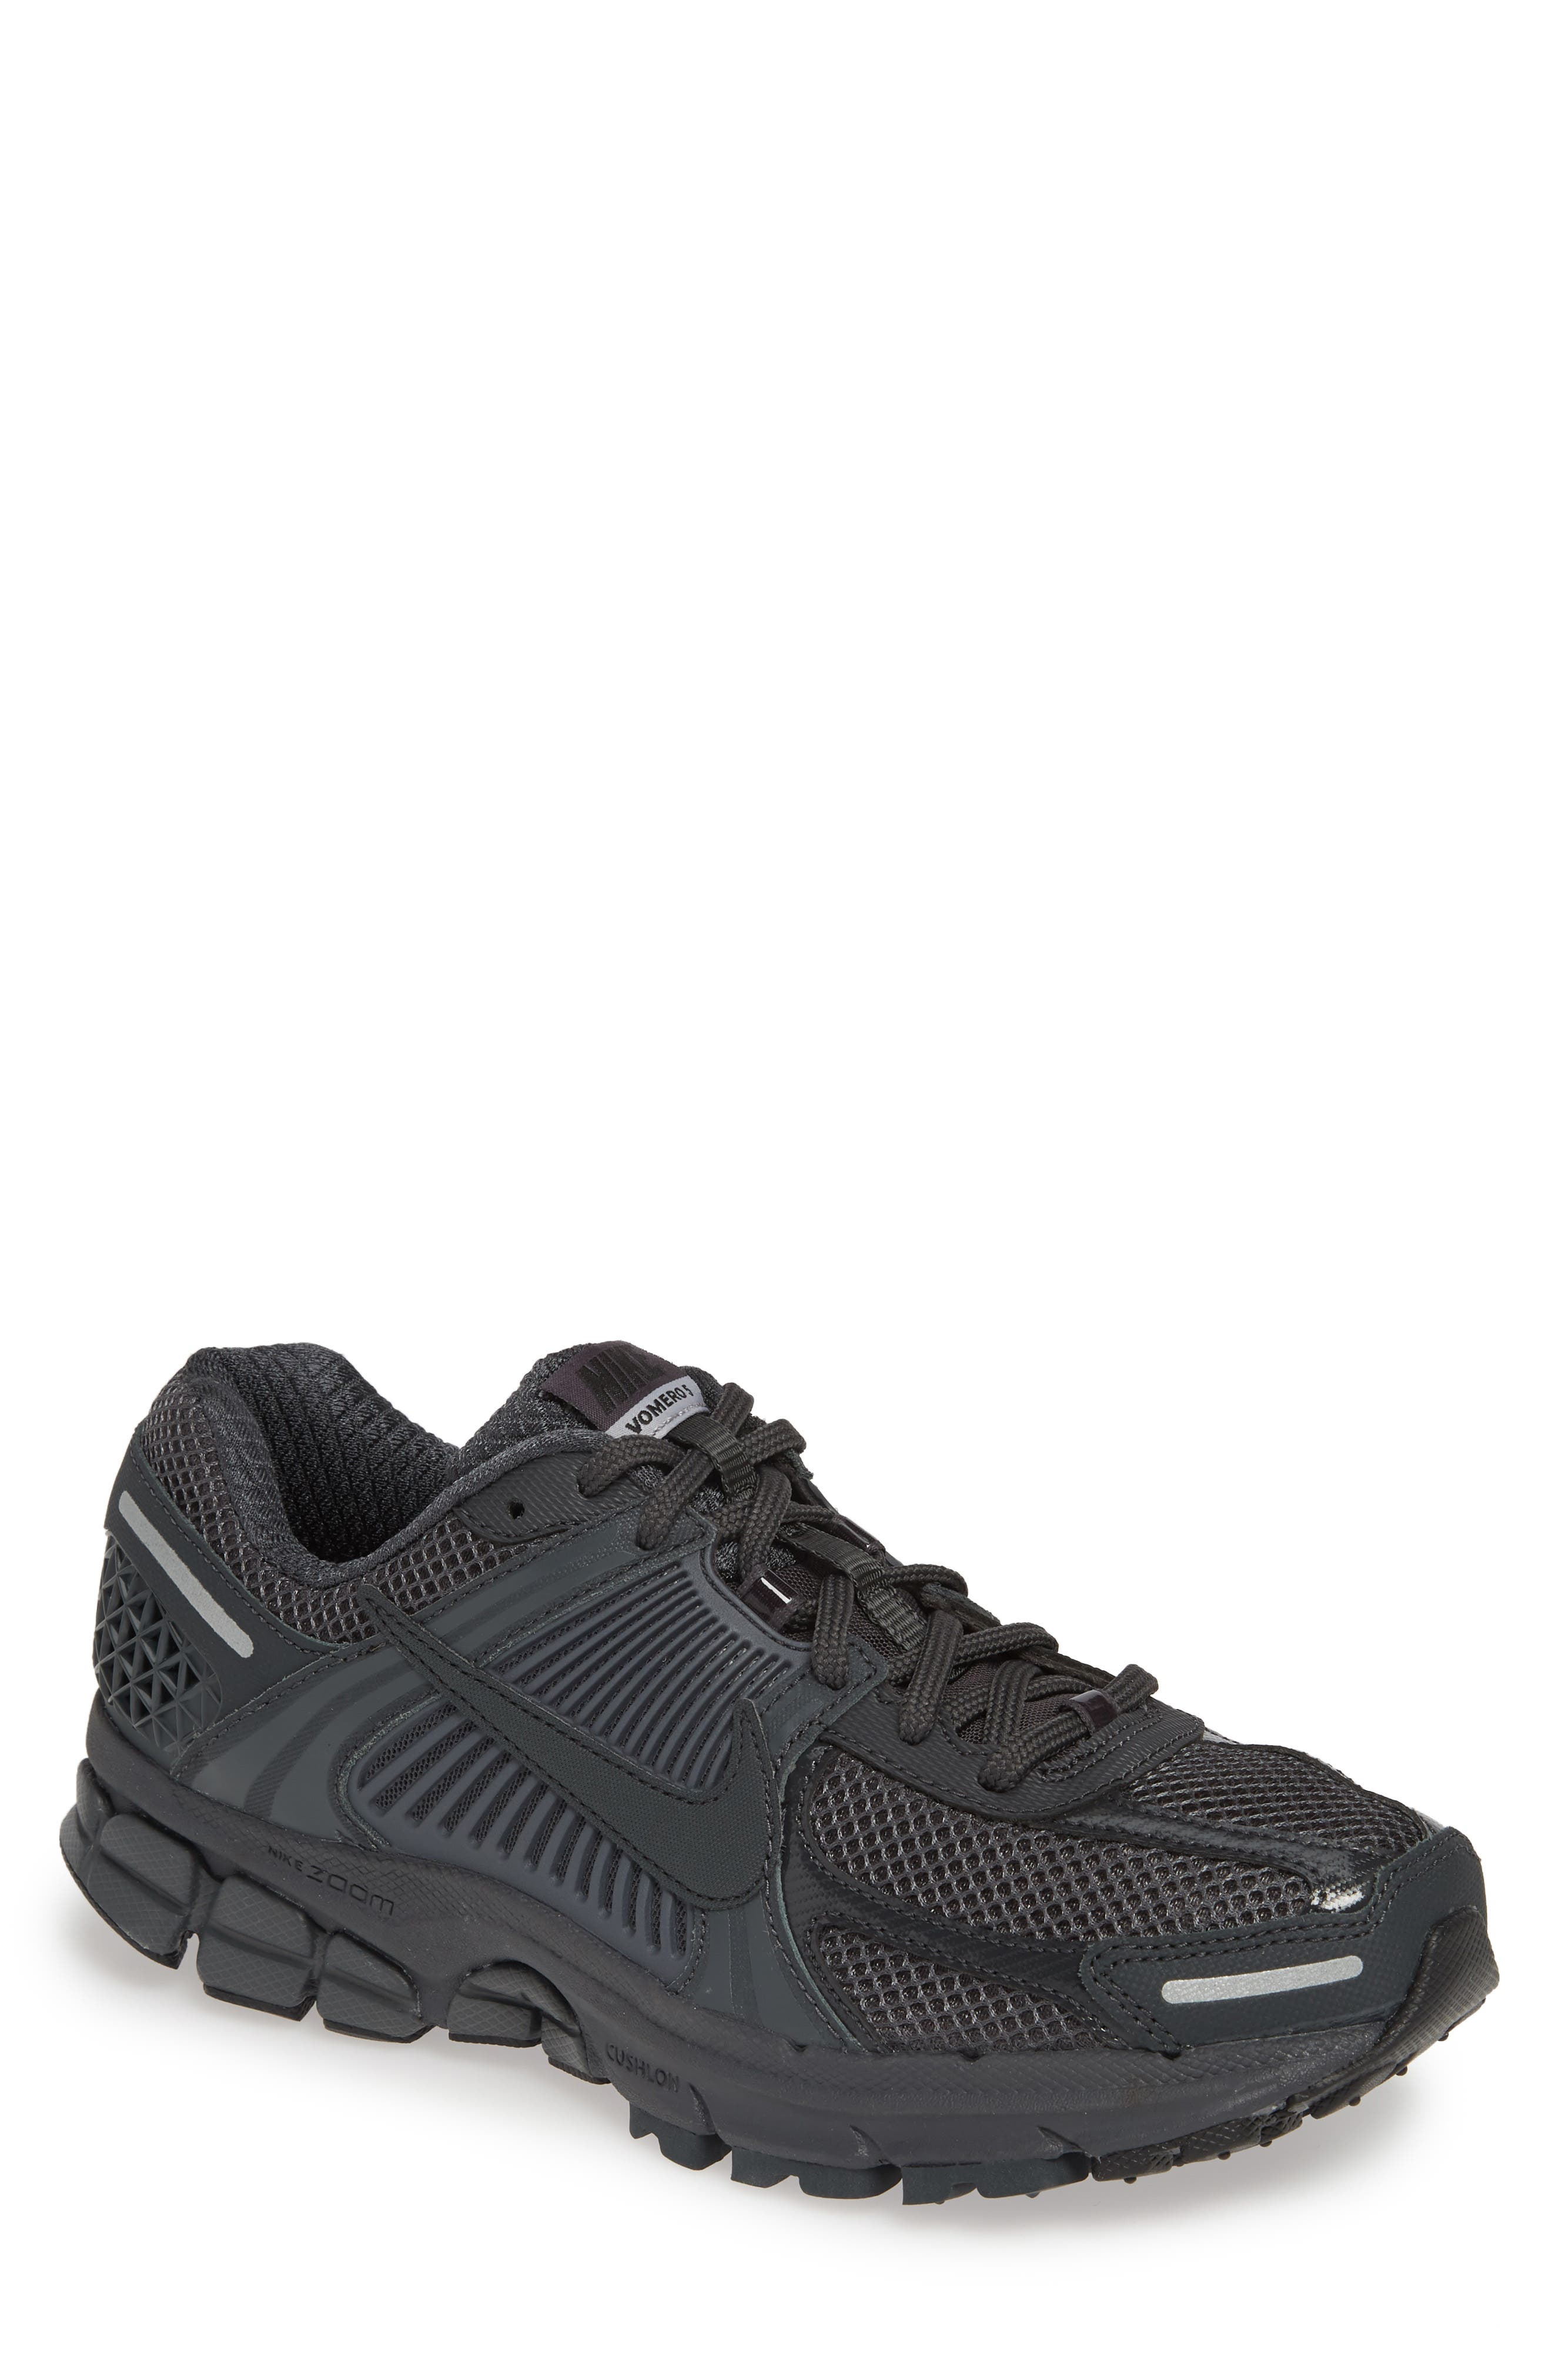 Nike Zoom Vomero 5 Sp Sneaker- Black